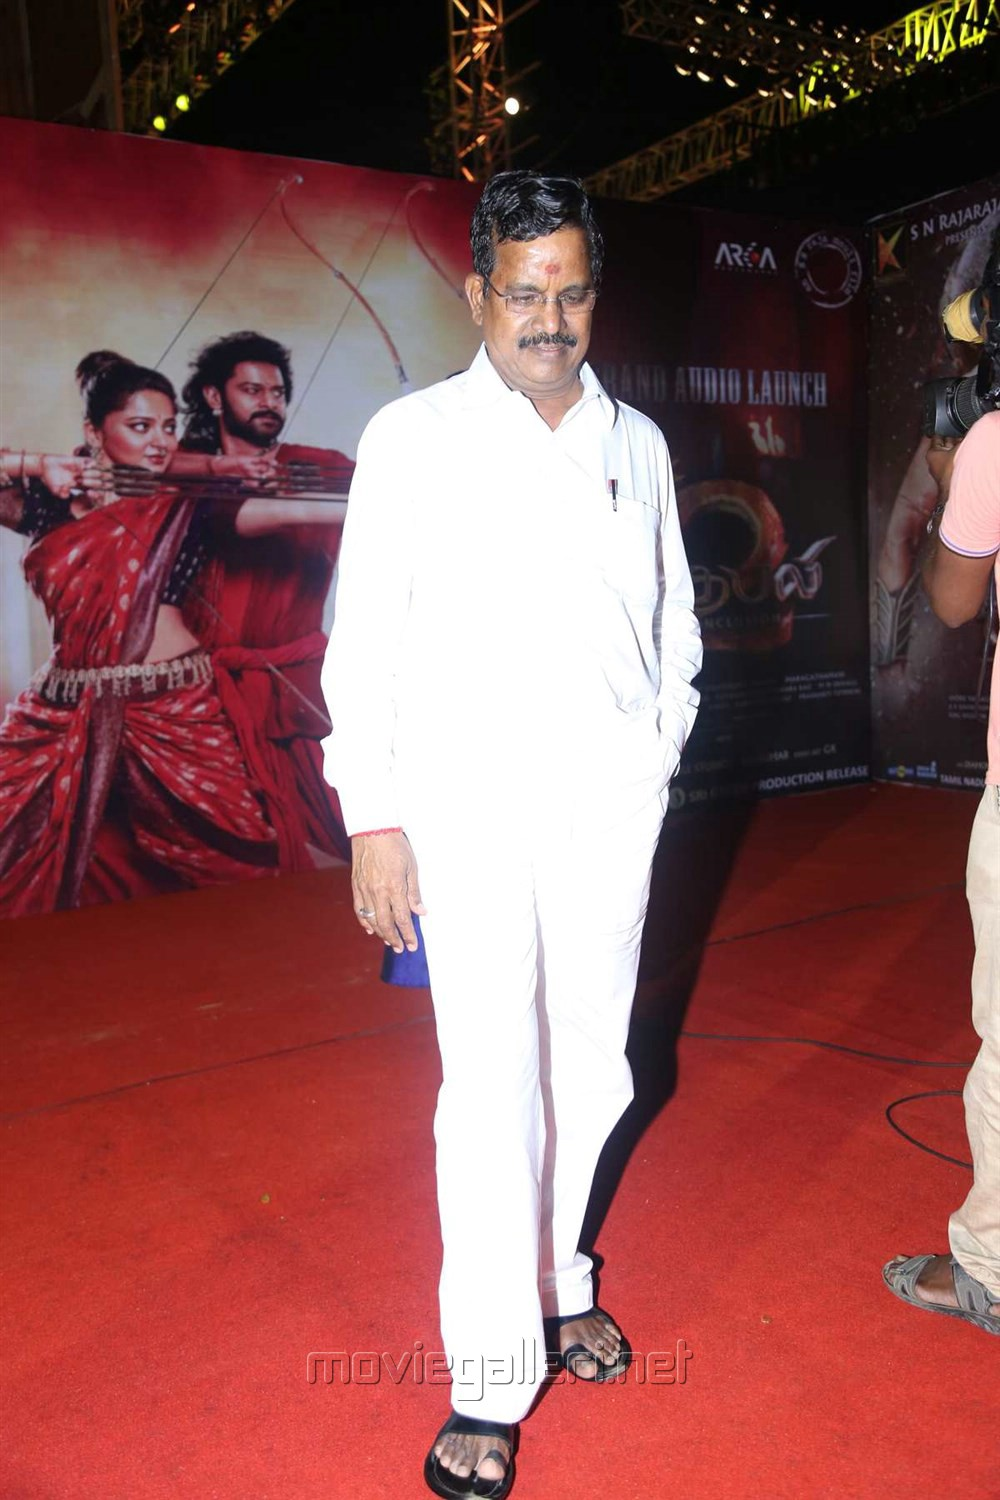 Kalaipuli S Thanu @ Baahubali 2 Tamil Audio Launch Photos